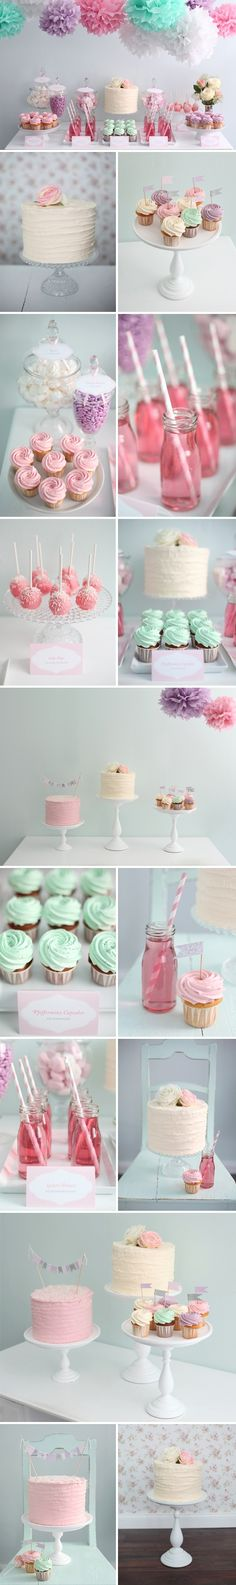 Best cupcakes ideas for baby shower girl birthday parties Ideas Baby Shower, Girl Shower, Shower Cake, Shower Party, Baby Birthday, First Birthday Parties, 1st Birthdays, Birthday Table, Birthday Ideas